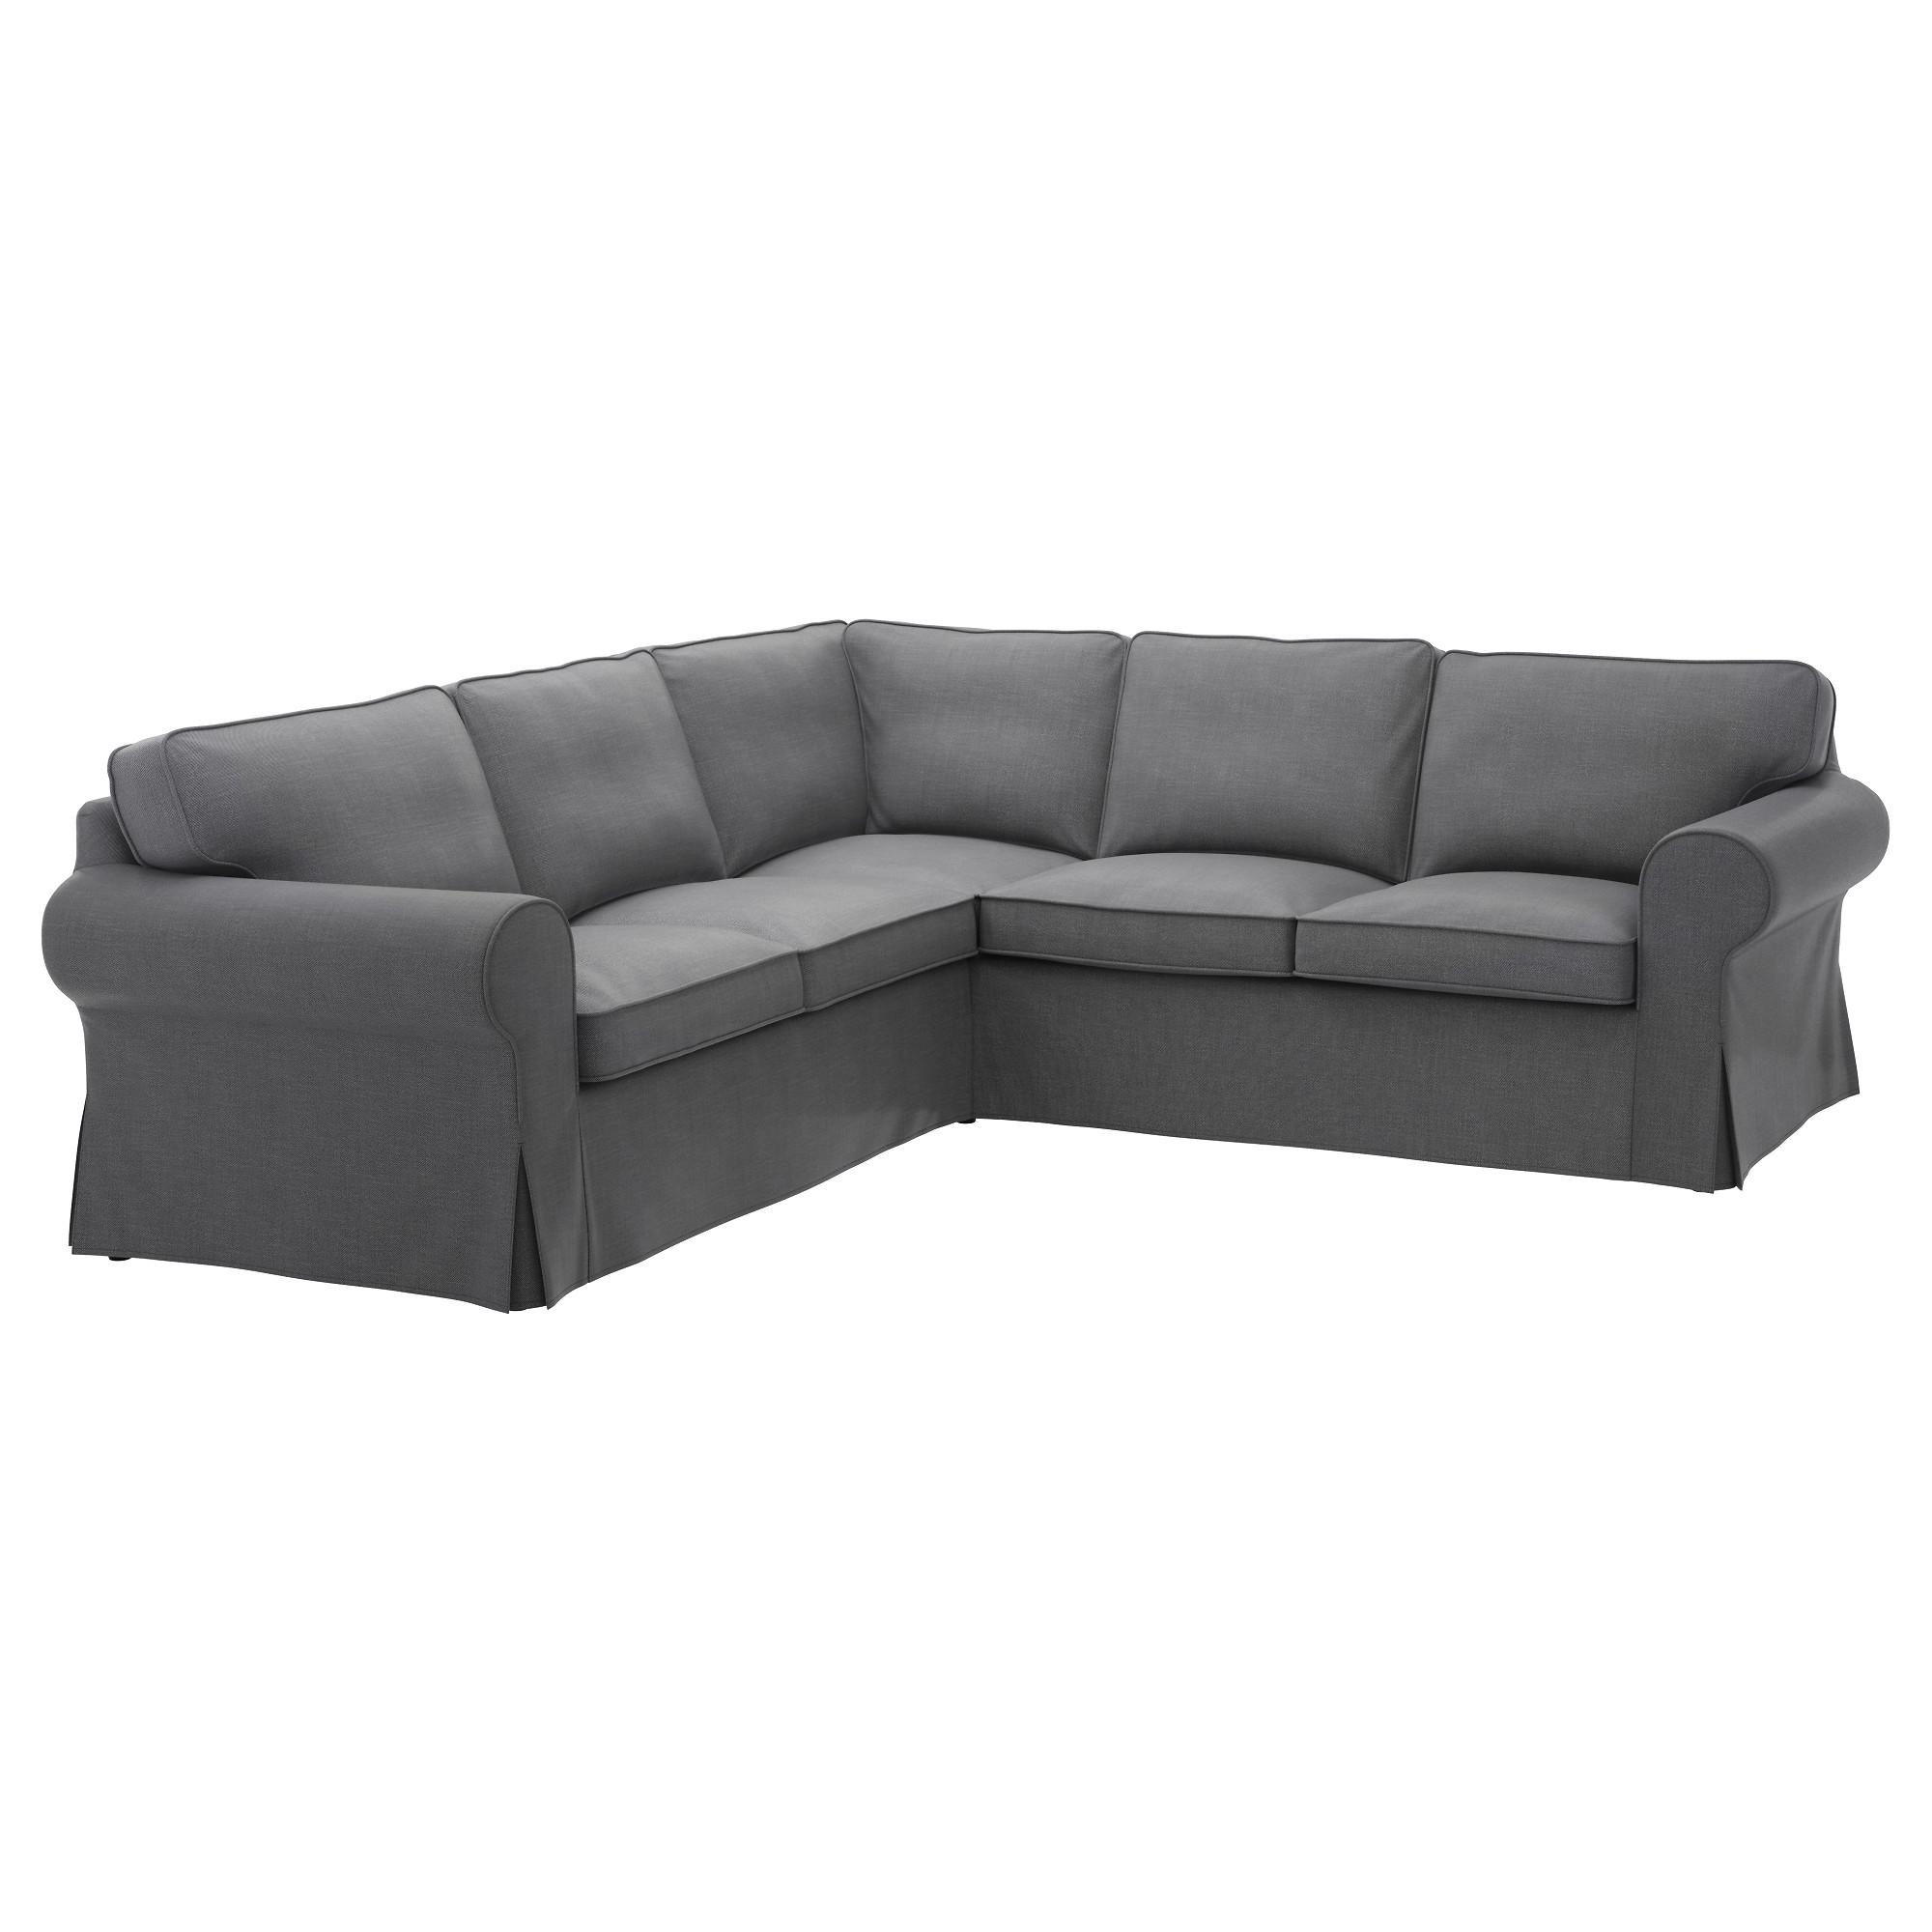 Fabric Sofas – Modern & Contemporary – Ikea Pertaining To Contemporary Fabric Sofas (Image 10 of 20)